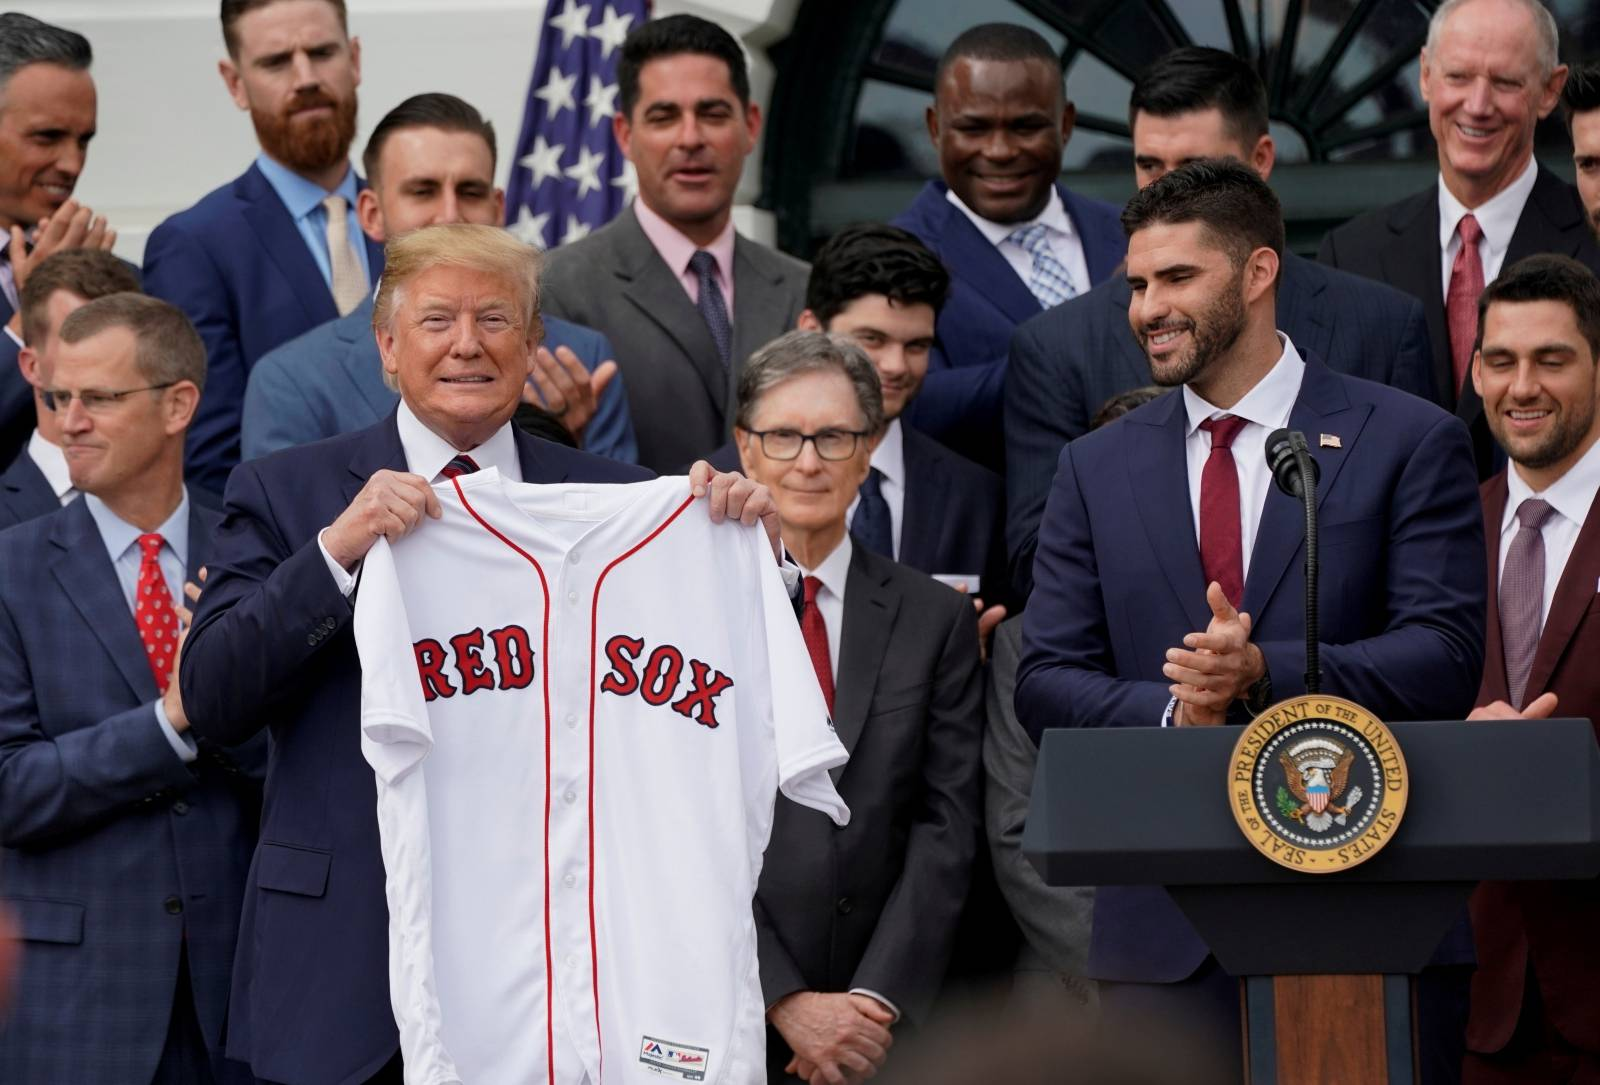 FILE PHOTO: U.S. President Donald Trump holds a Boston Red Sox jersey presented by outfielder and designated hitter J.D. Martinez while welcoming the 2018 World Series Champions on the South Lawn at the White House in Washington.